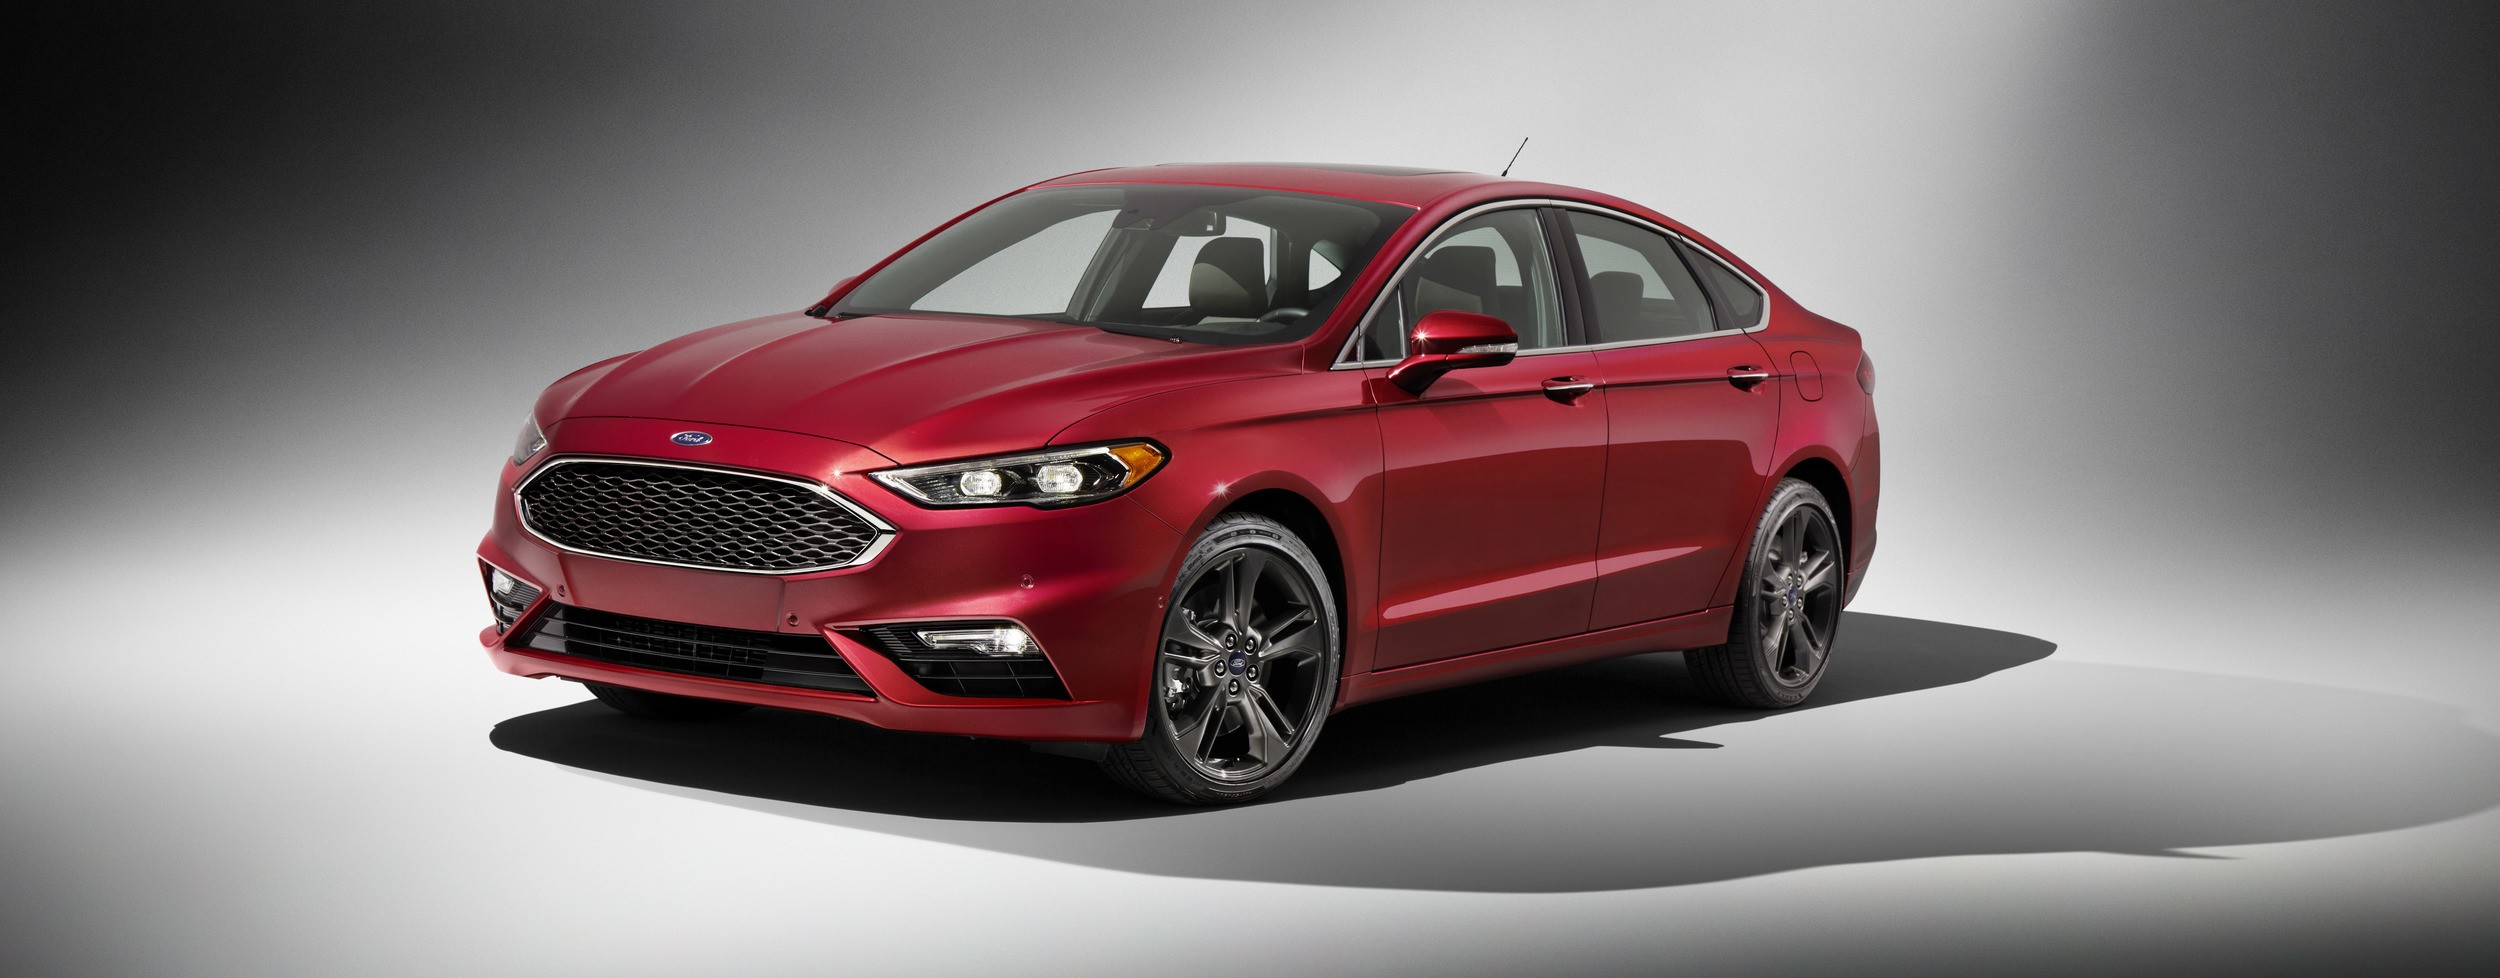 pothole mitigation technology arrives this summer on the ford fusion v6 sport autoevolution. Black Bedroom Furniture Sets. Home Design Ideas